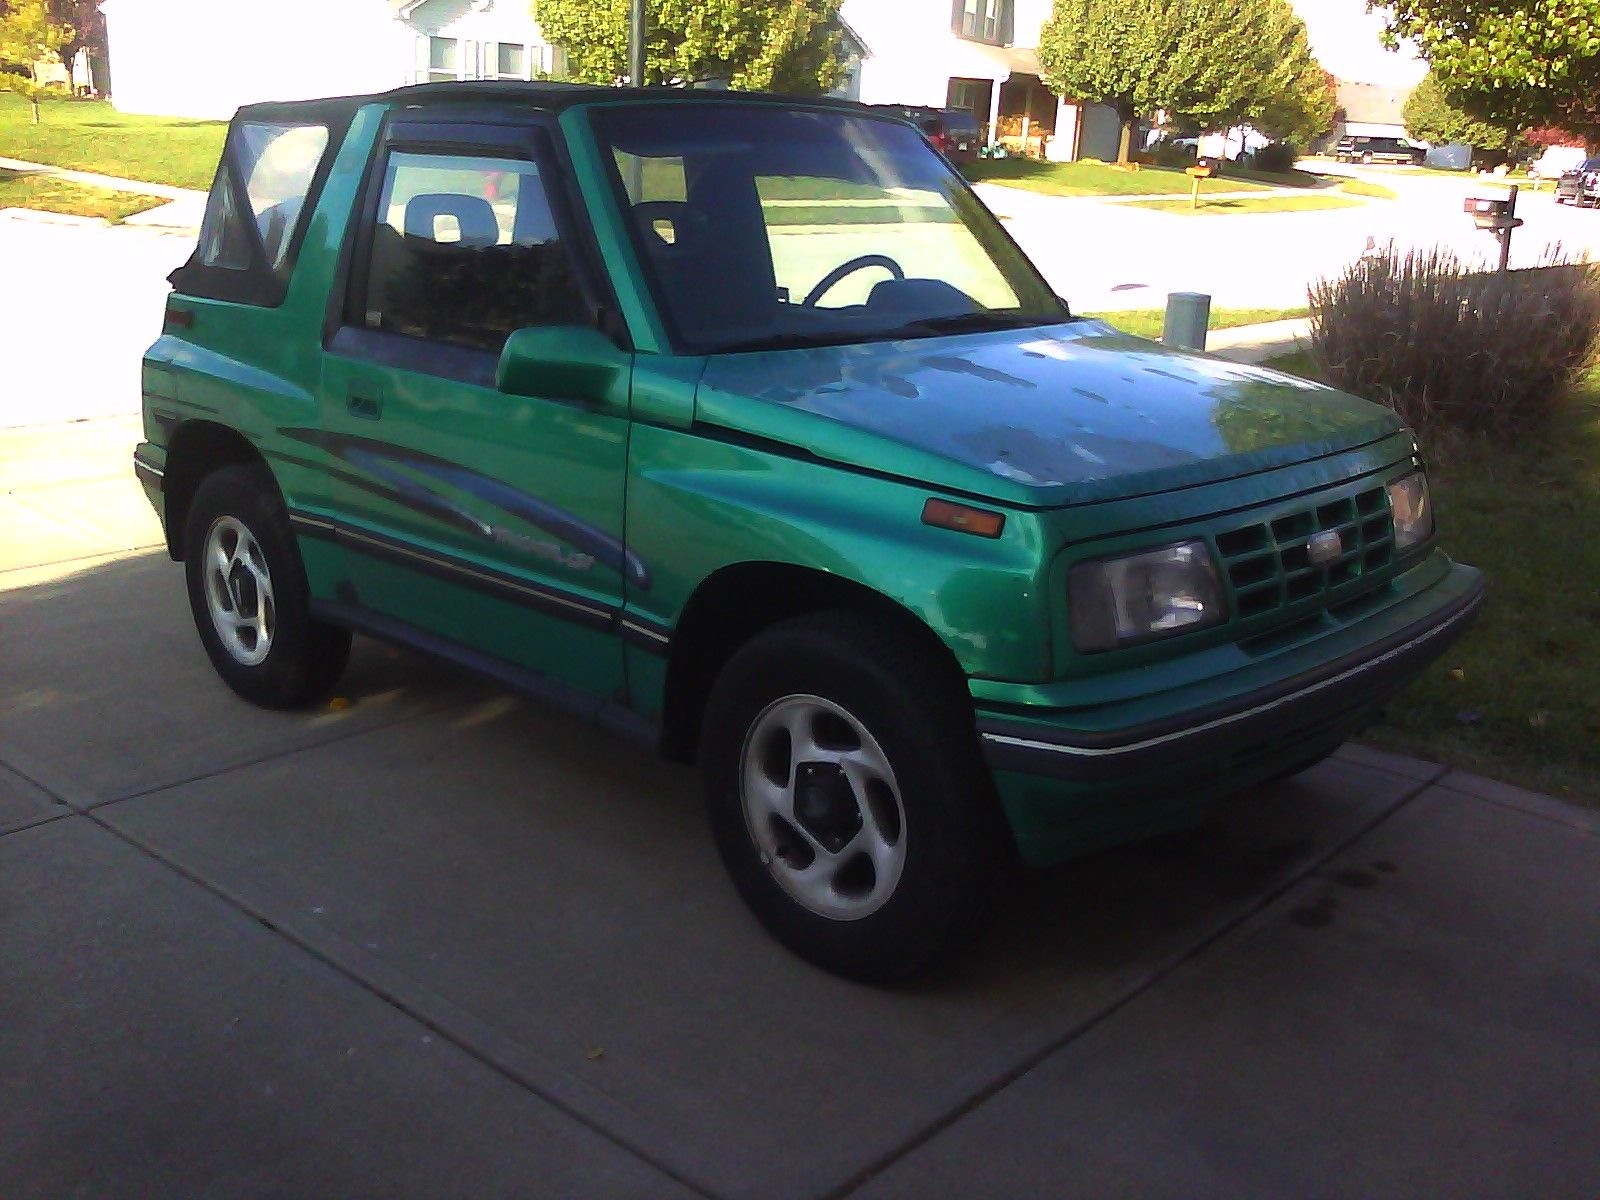 1994 Geo Tracker 2 Dr LSi 4WD Convertible